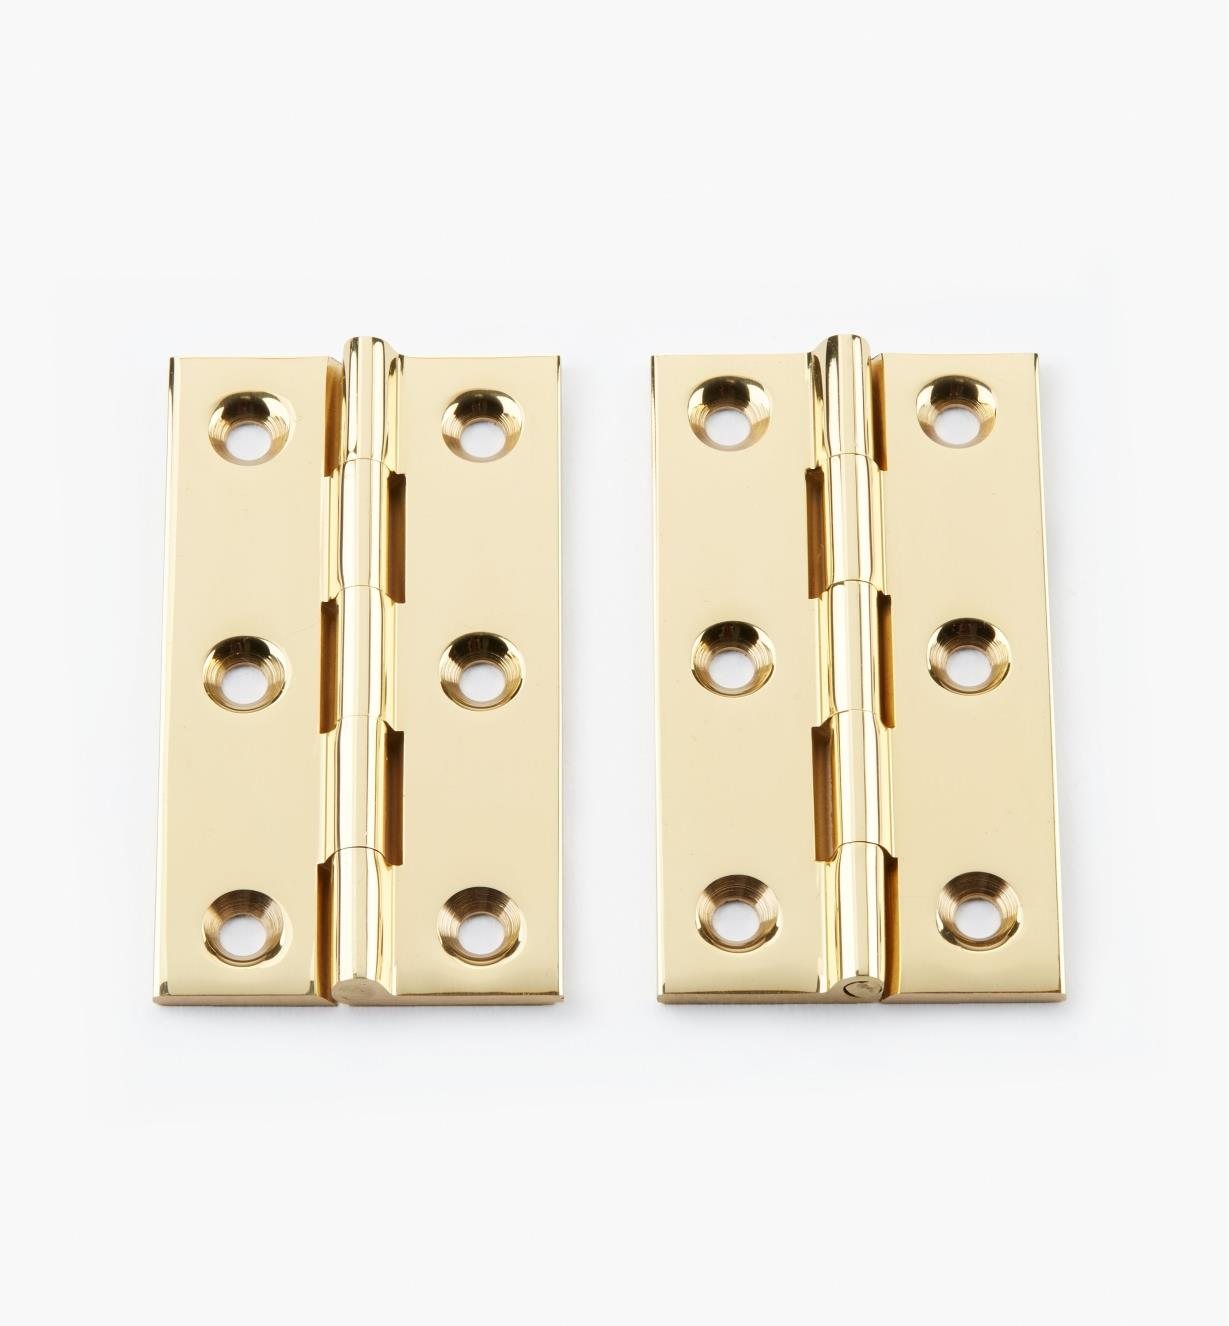 "00D0203 - 2 1/2"" × 1 3/8"" Extruded Brass Fixed-Pin Butt Hinges, pr."